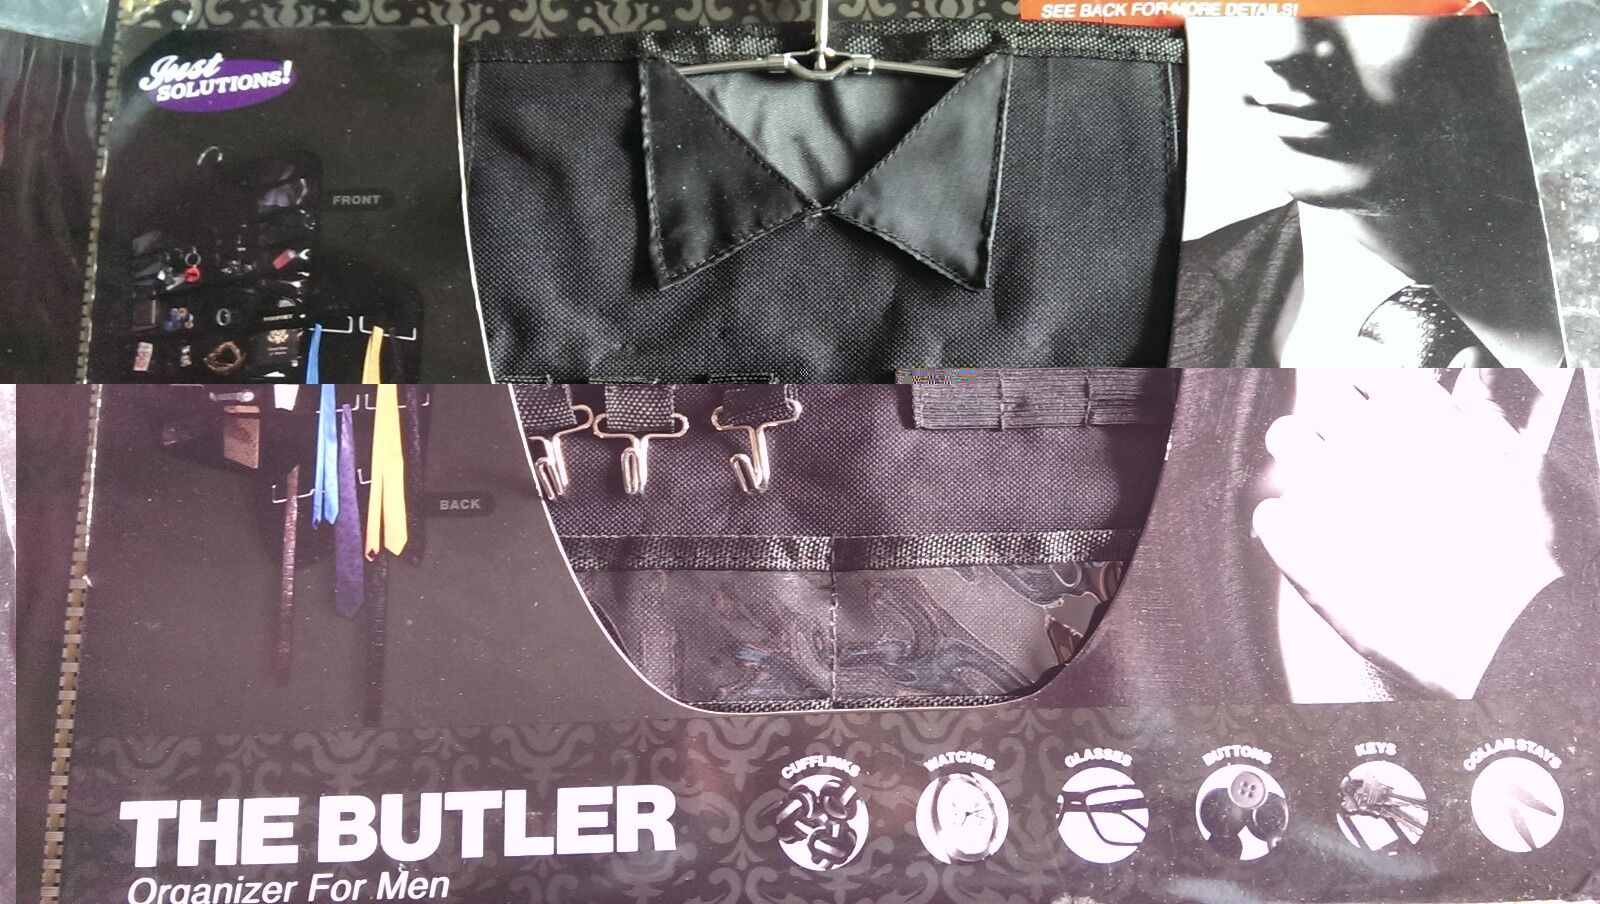 2x The Butler Organizer For Men Ties Belts All Accessories In One Place New